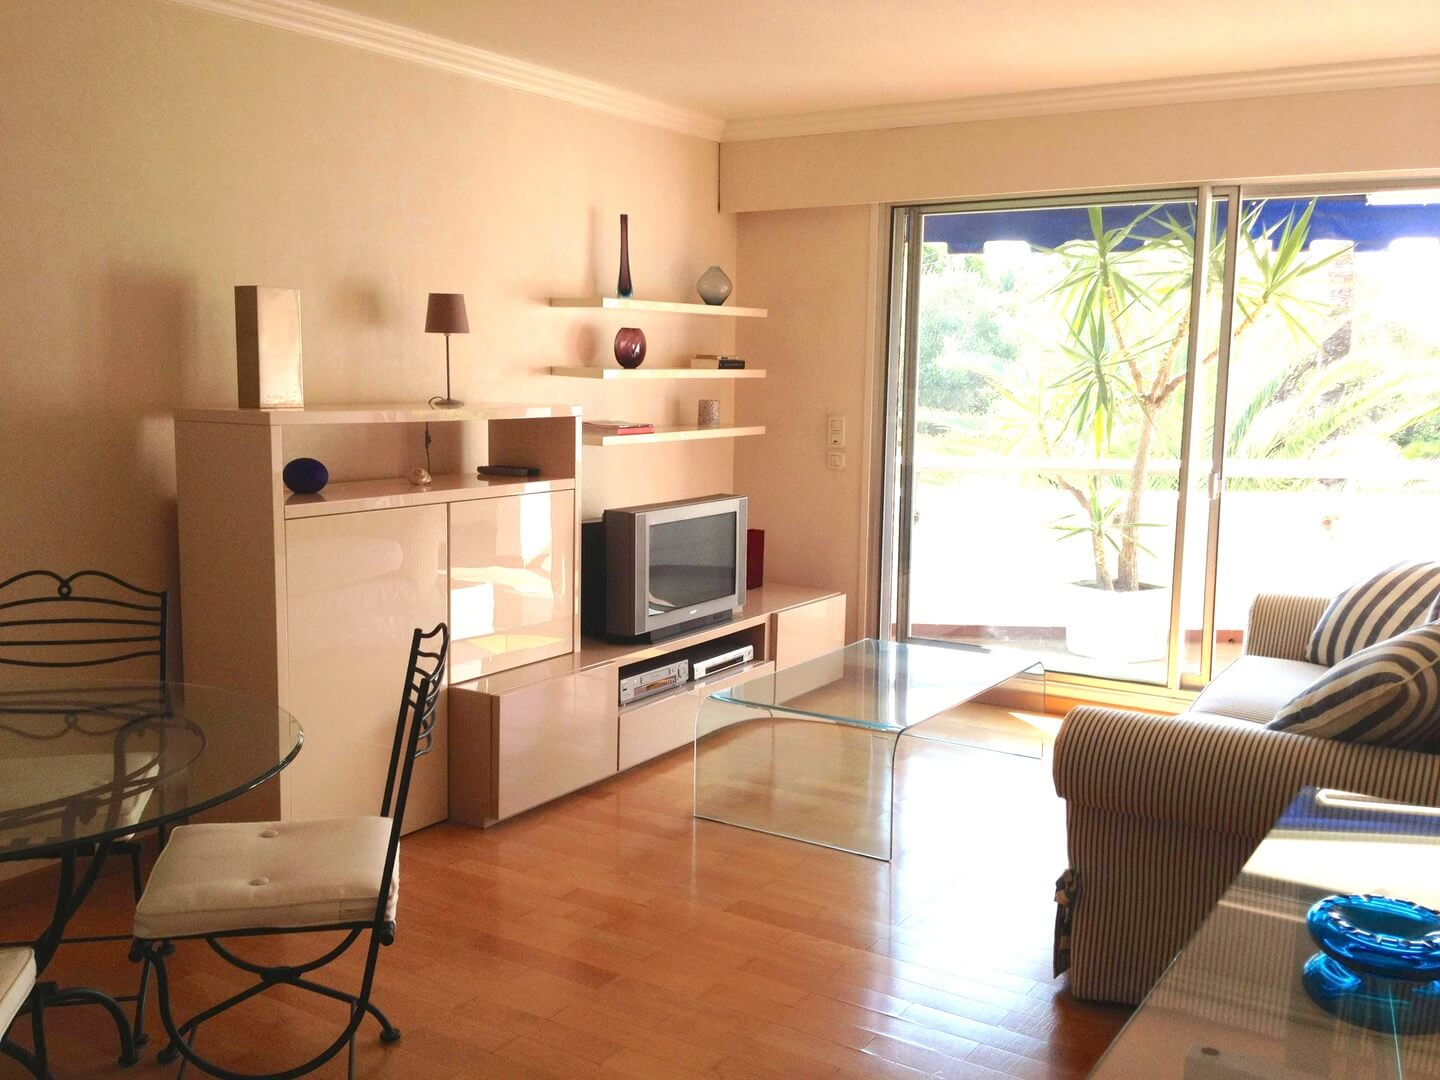 Homki - Vente Appartement  de 50.0 m² à Cannes 06400